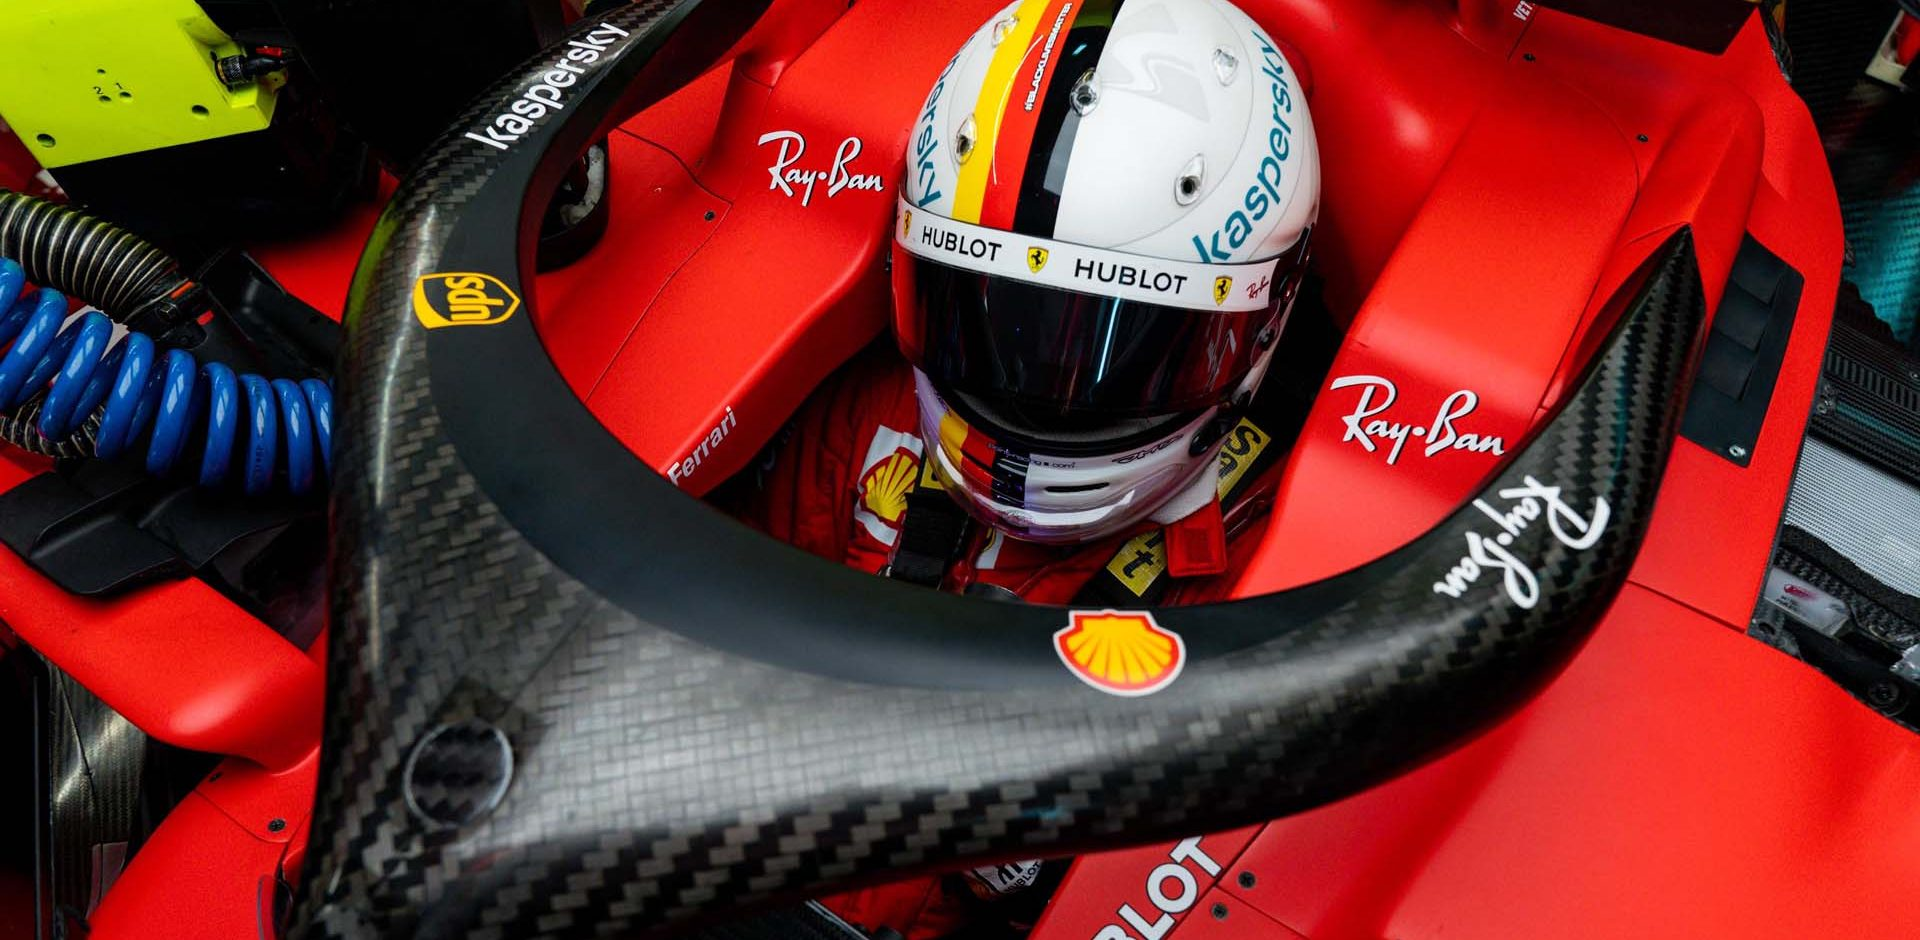 GP RUSSIA F1/2020 -  SABATO 26/09/2020      credit: @Scuderia Ferrari Press Office Sebastian Vettel Ferrari